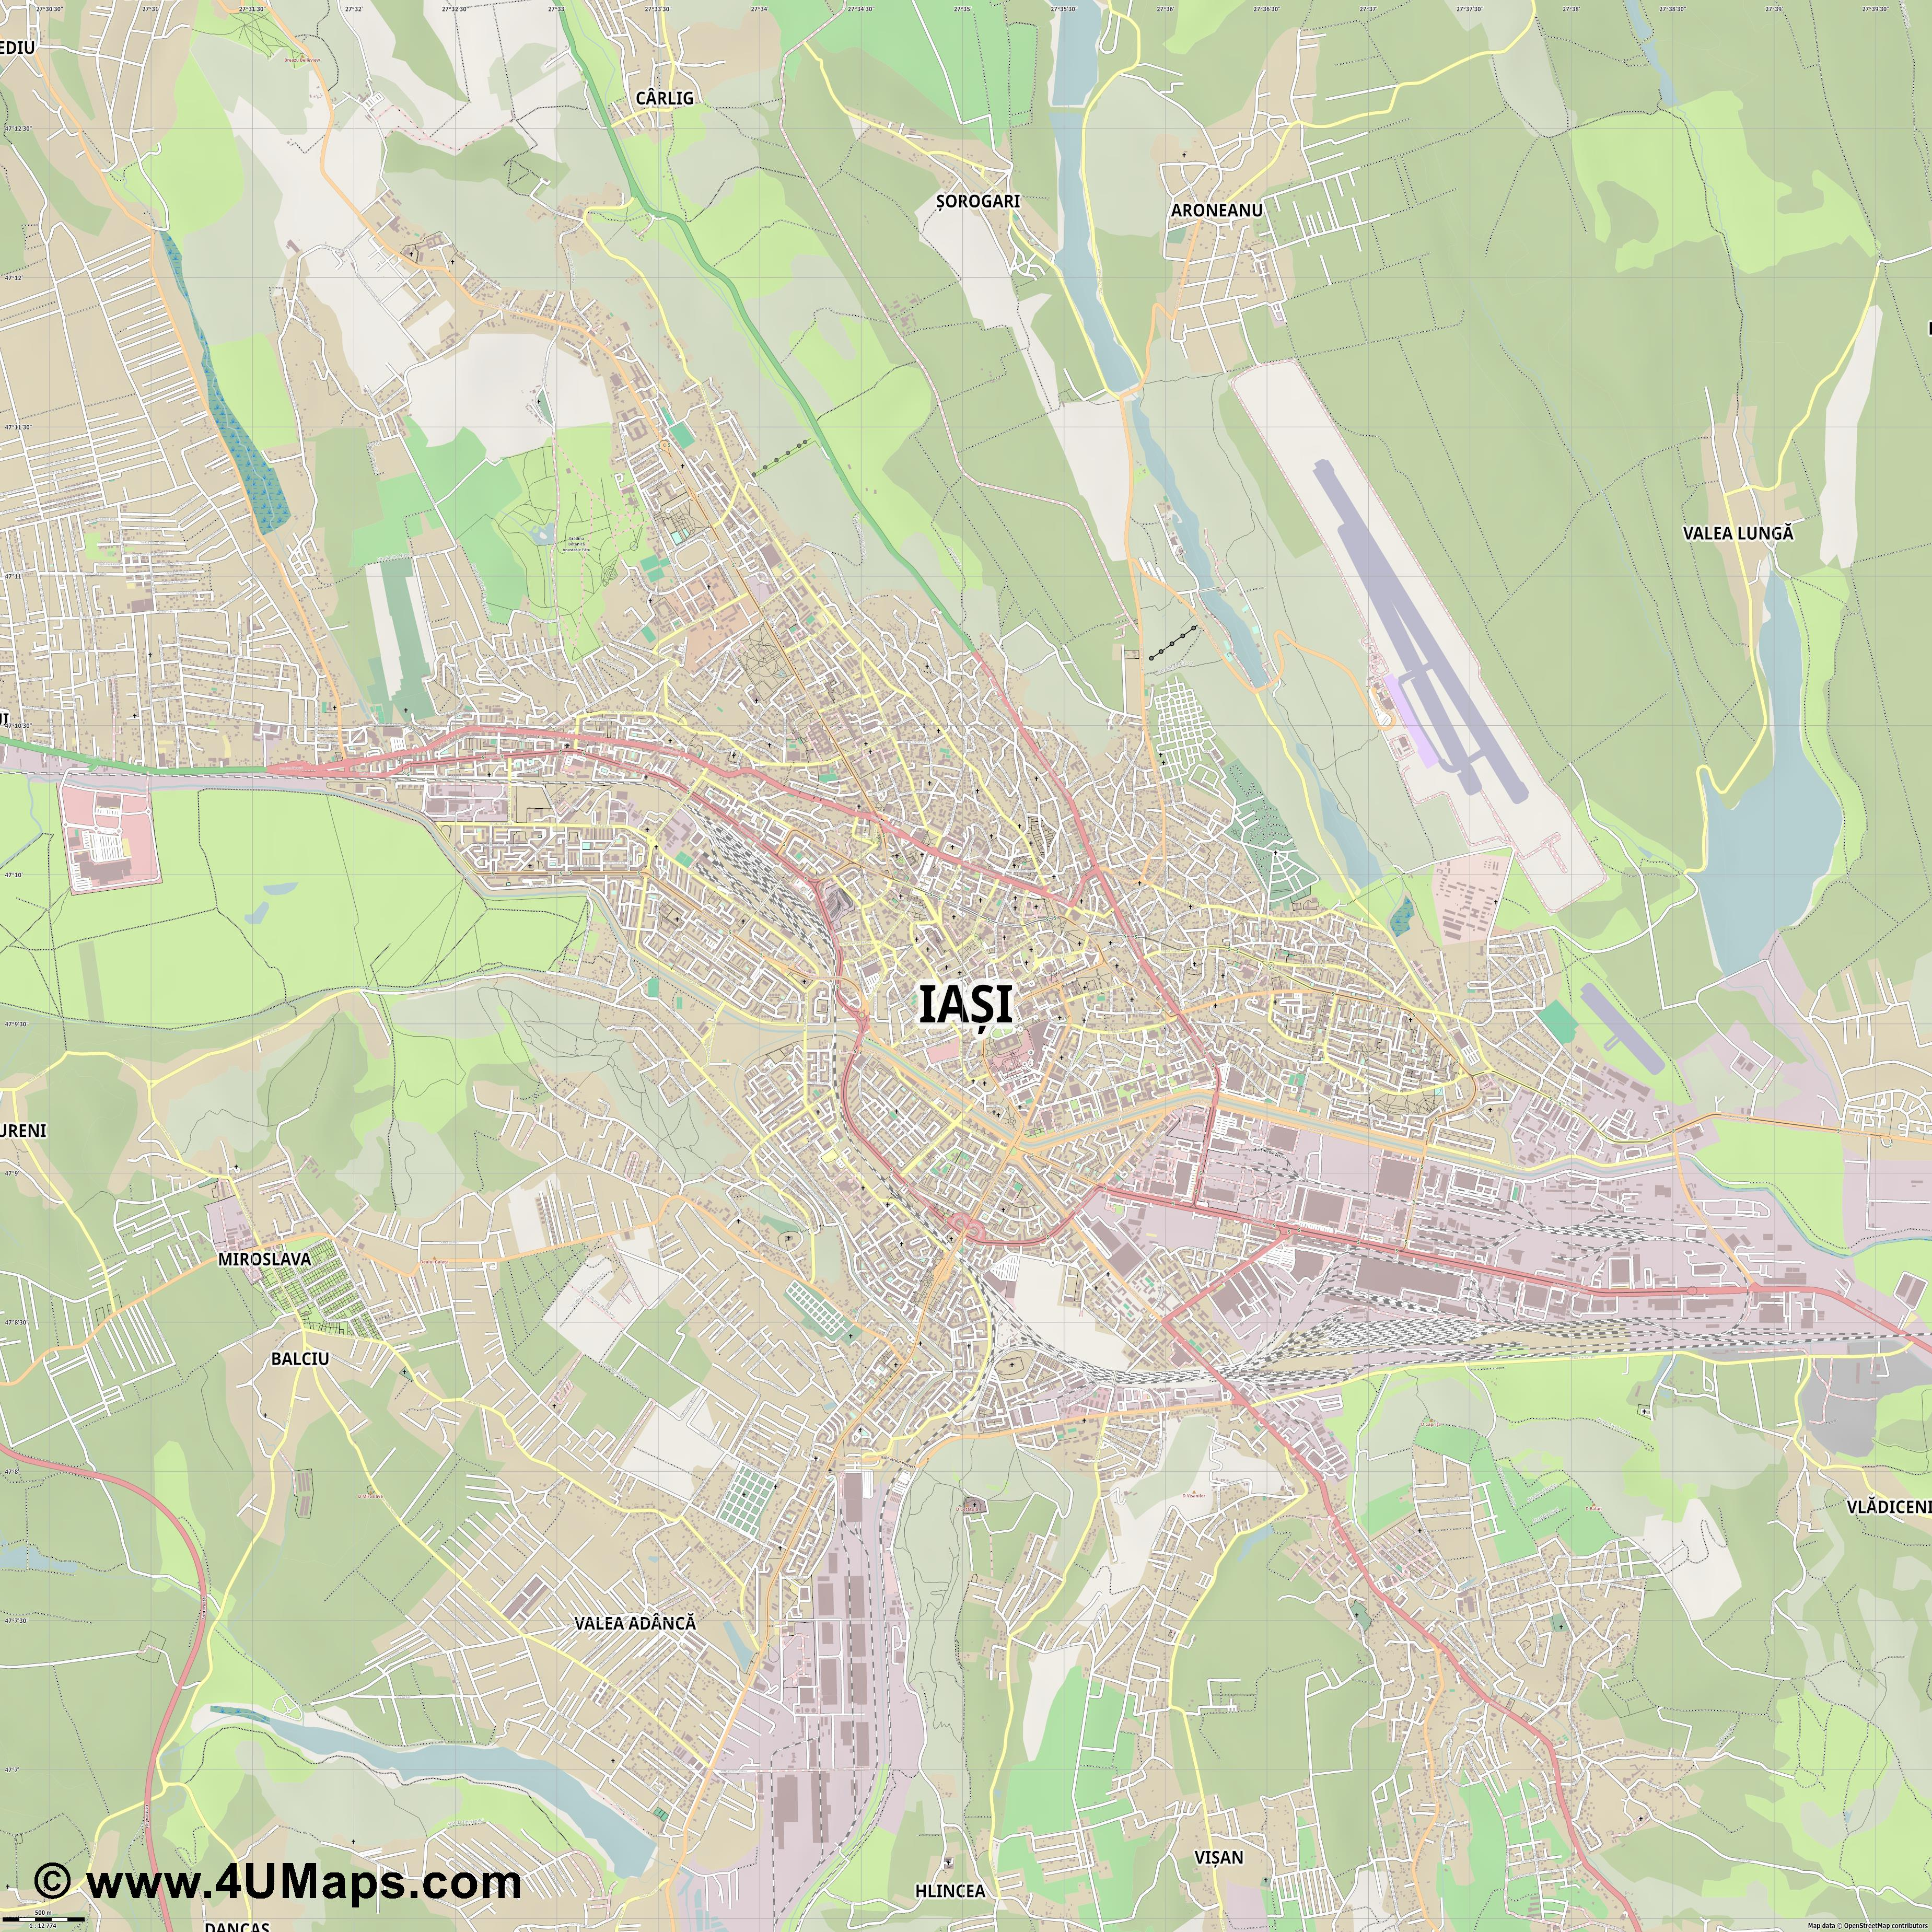 Iași Iasi  jpg ultra high detail preview vector city map